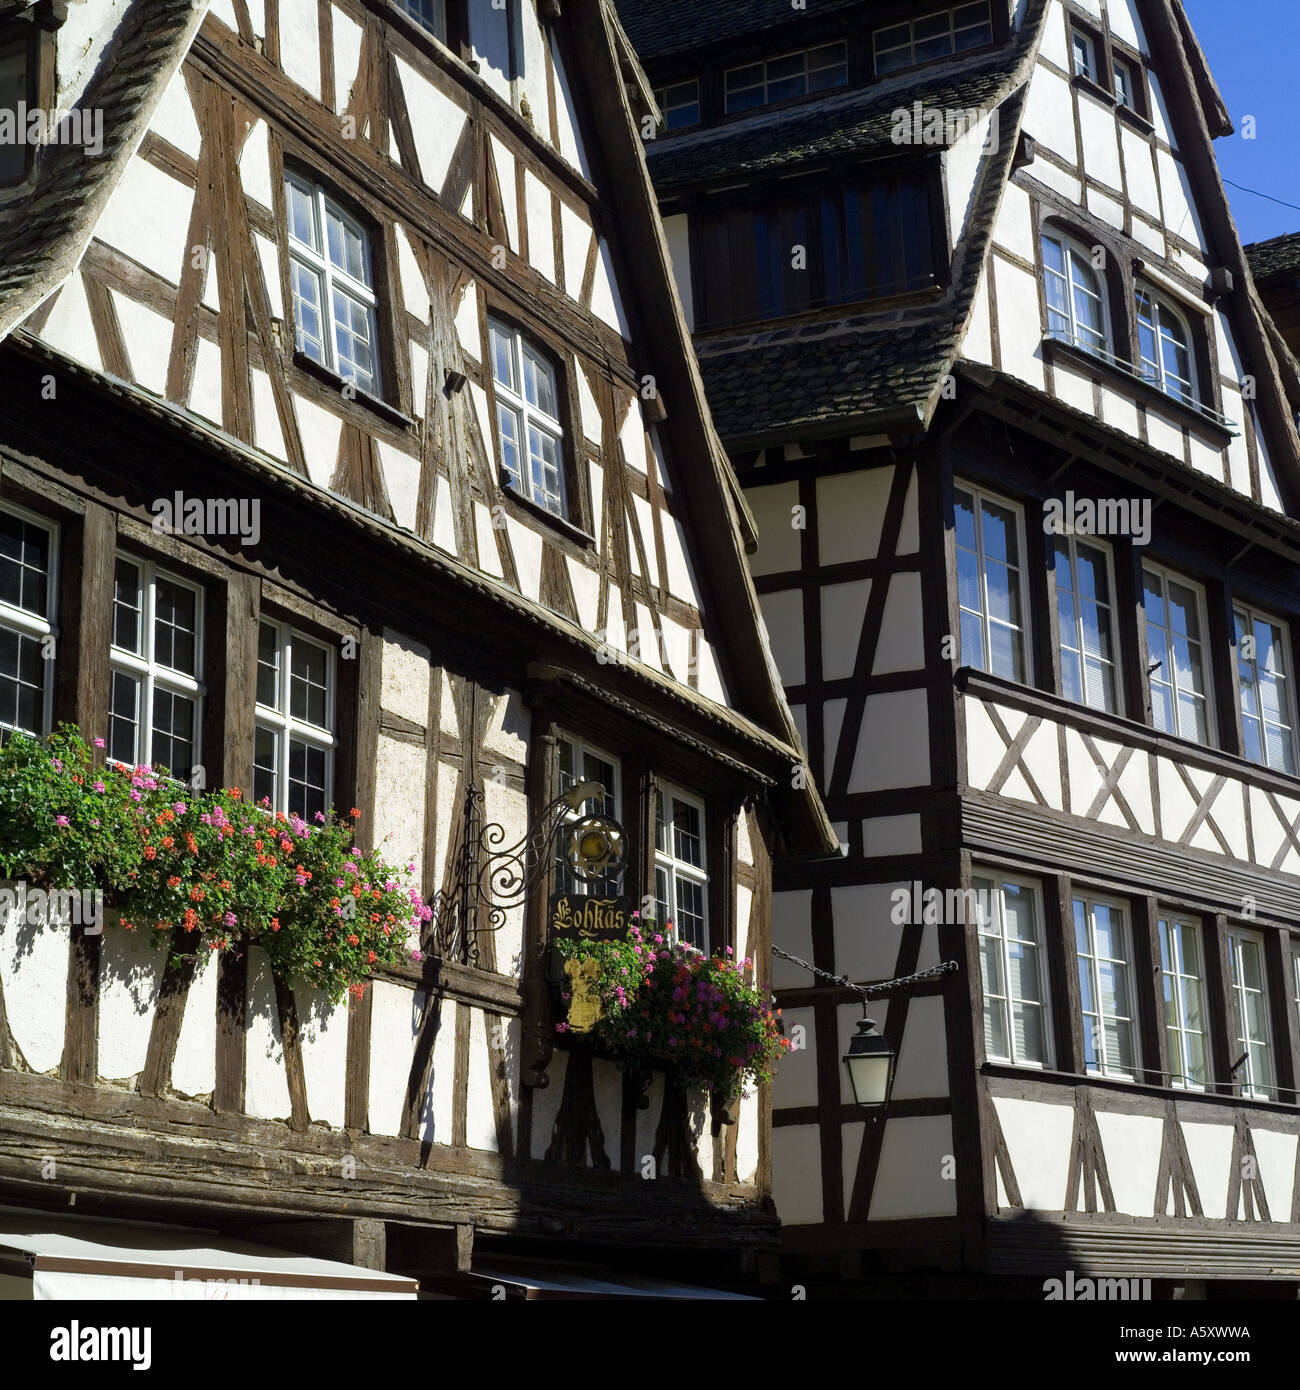 16th Century French Home - renaissance-half-timbered-houses-16th-century-la-petite-france-district-A5XWWA_Cool 16th Century French Home - renaissance-half-timbered-houses-16th-century-la-petite-france-district-A5XWWA  2018_39872.jpg